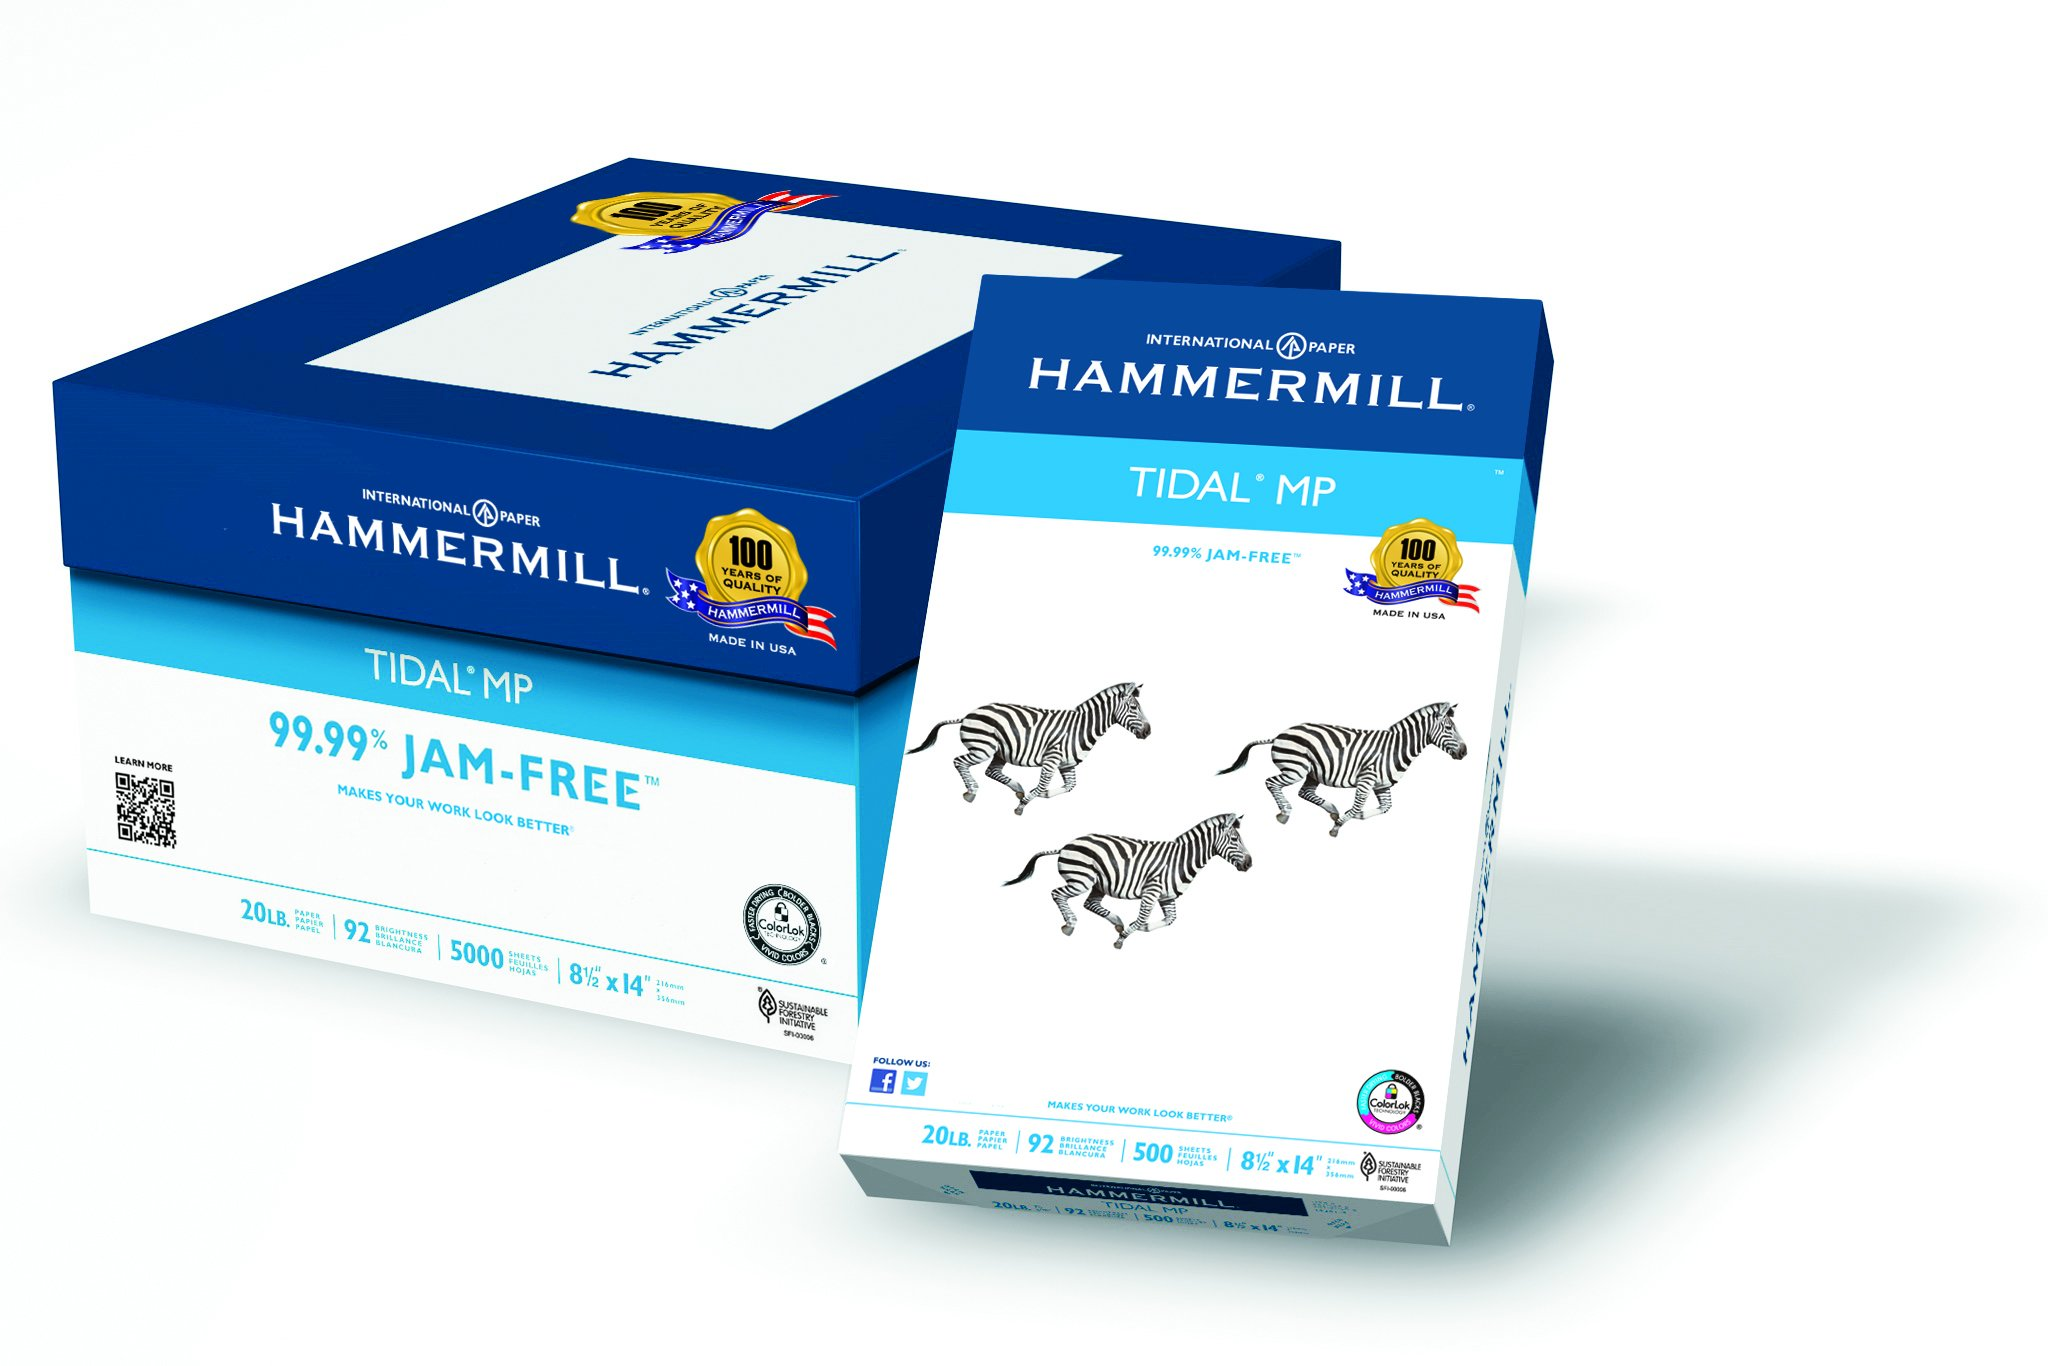 Hammermill Paper, Tidal MP, 20lb, 8 .5 x 14, Legal, 92 Bright, 5000 Sheets / 10 Ream Case (162016C), Made In The USA